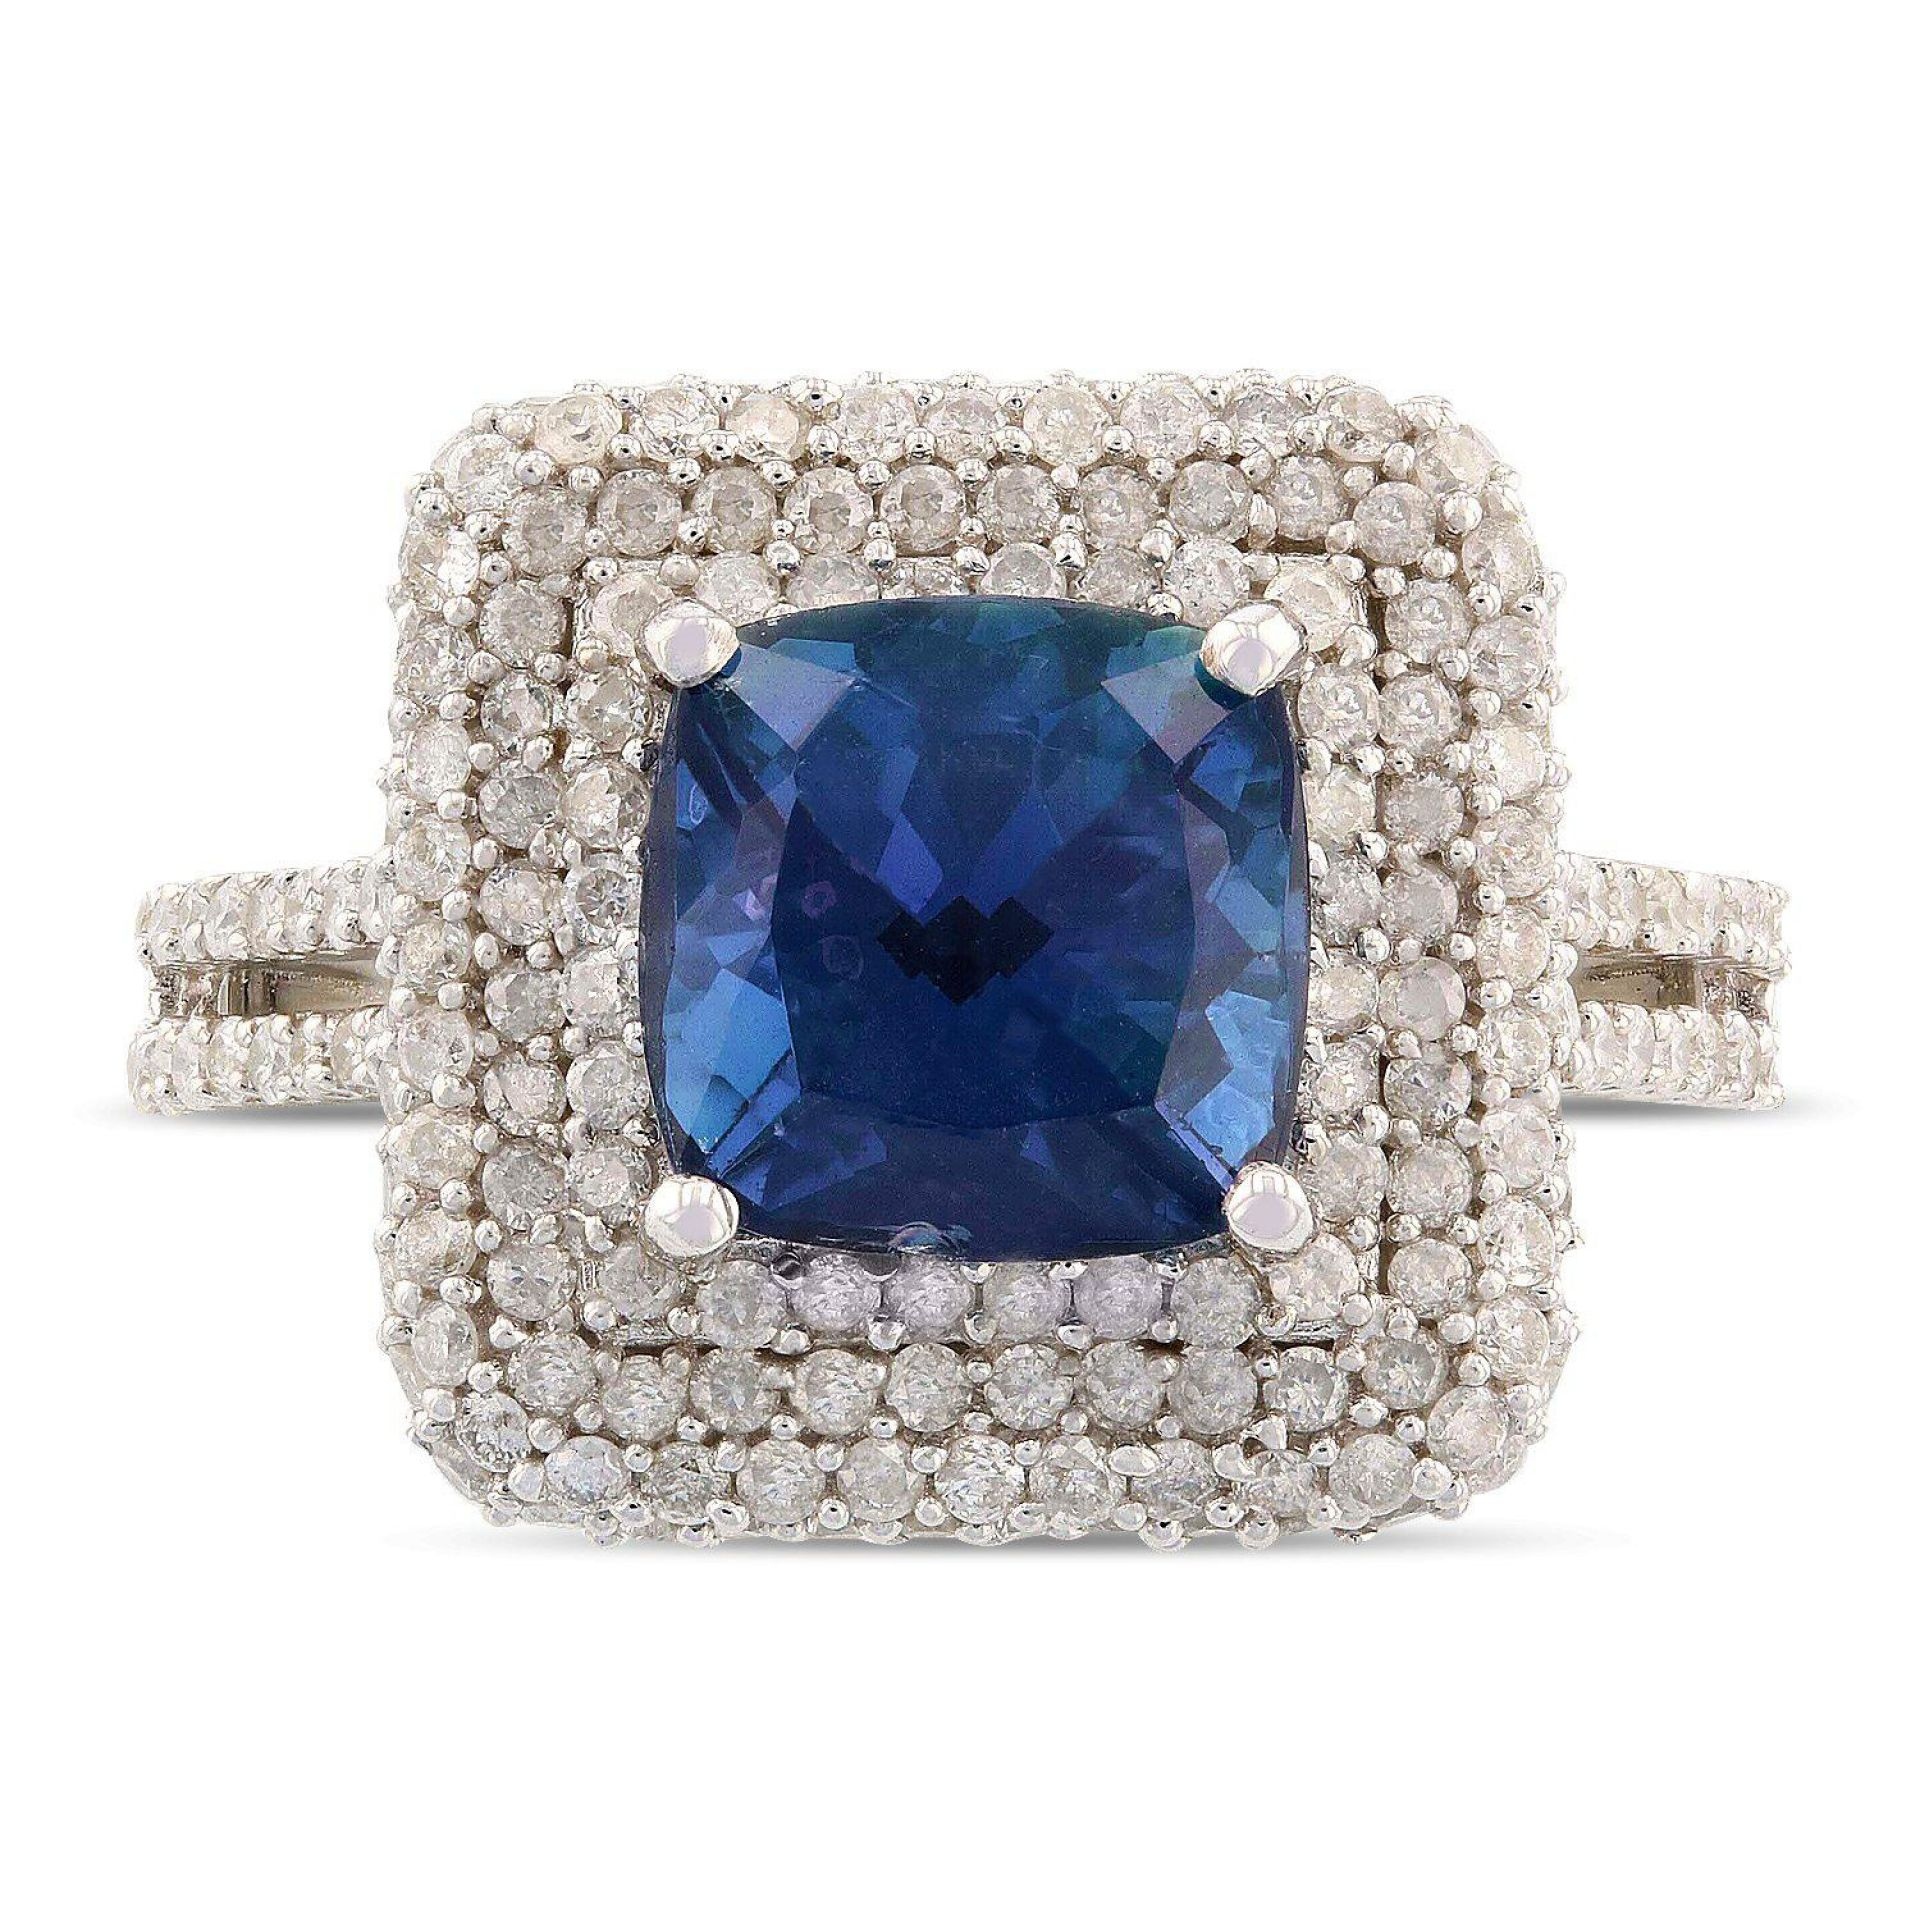 2.81ct Cobalt Coated Tanzanite and 1.31ctw Diamond 14KT White Gold Ring